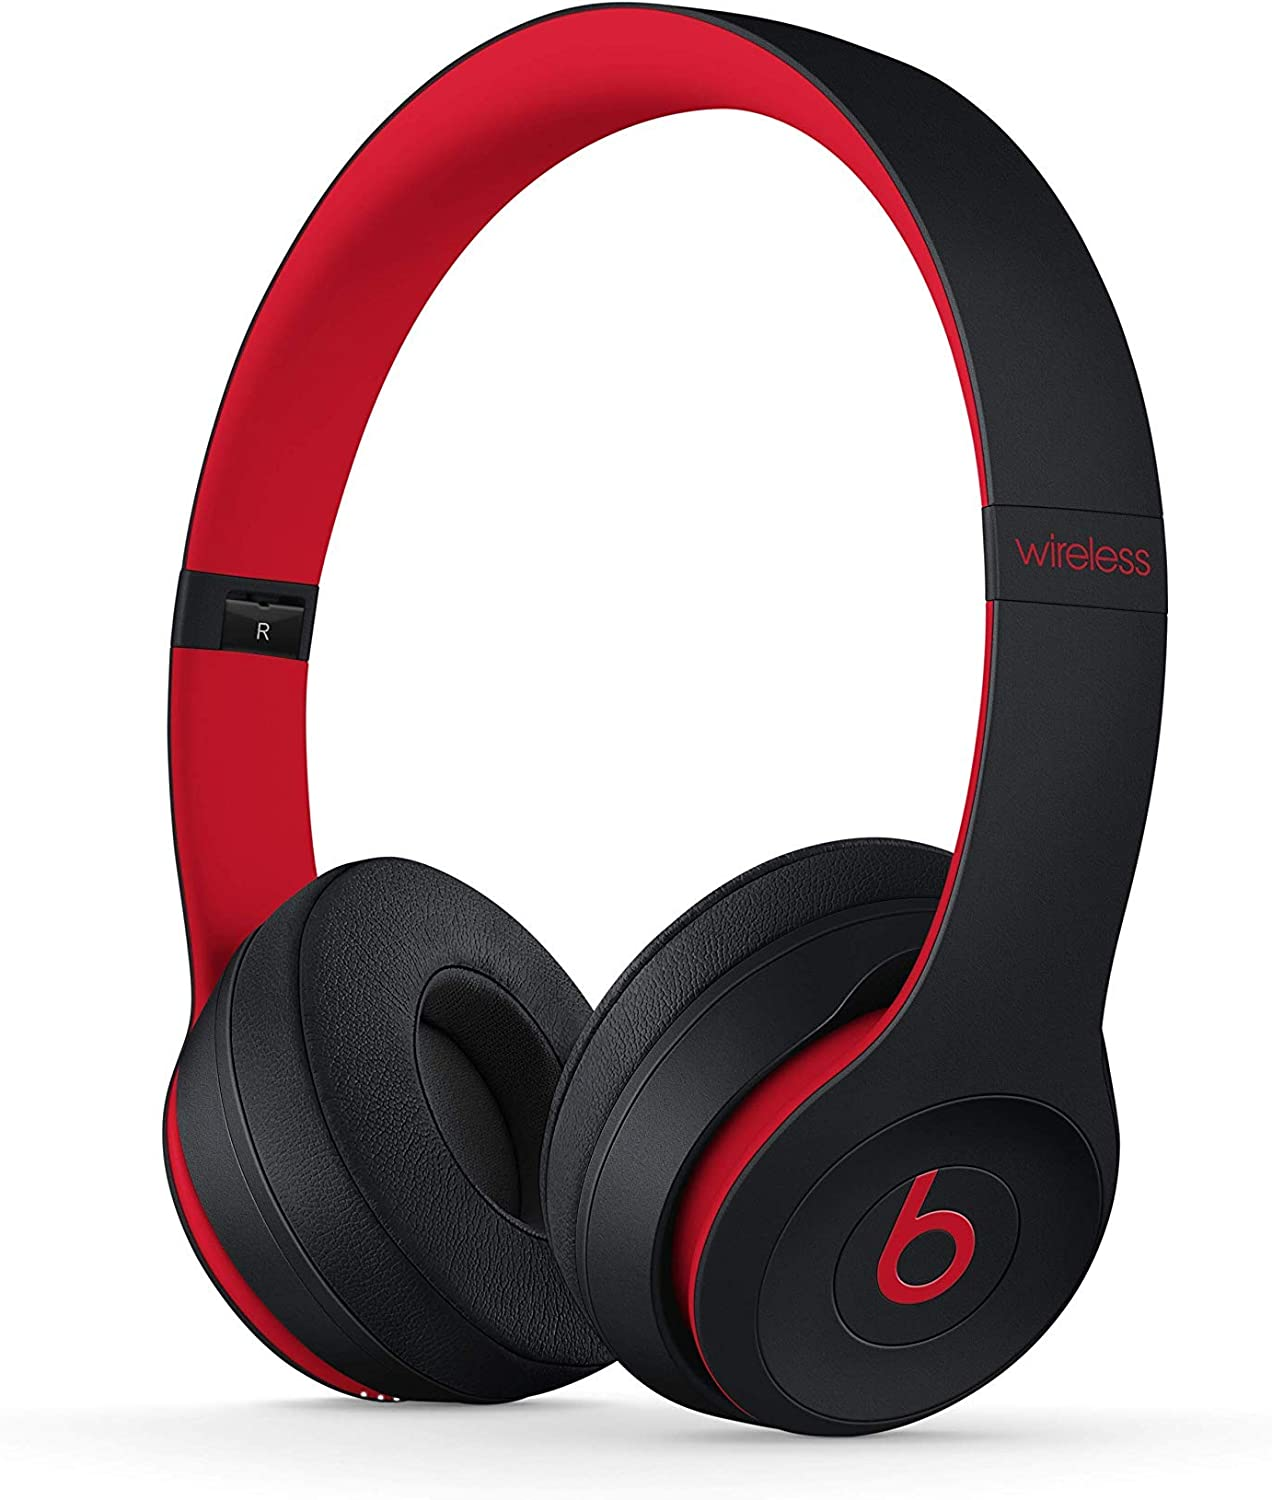 Amazon Com Beats Solo3 Wireless On Ear Headphones The Beats Decade Collection Defiant Black Red Renewed Electronics